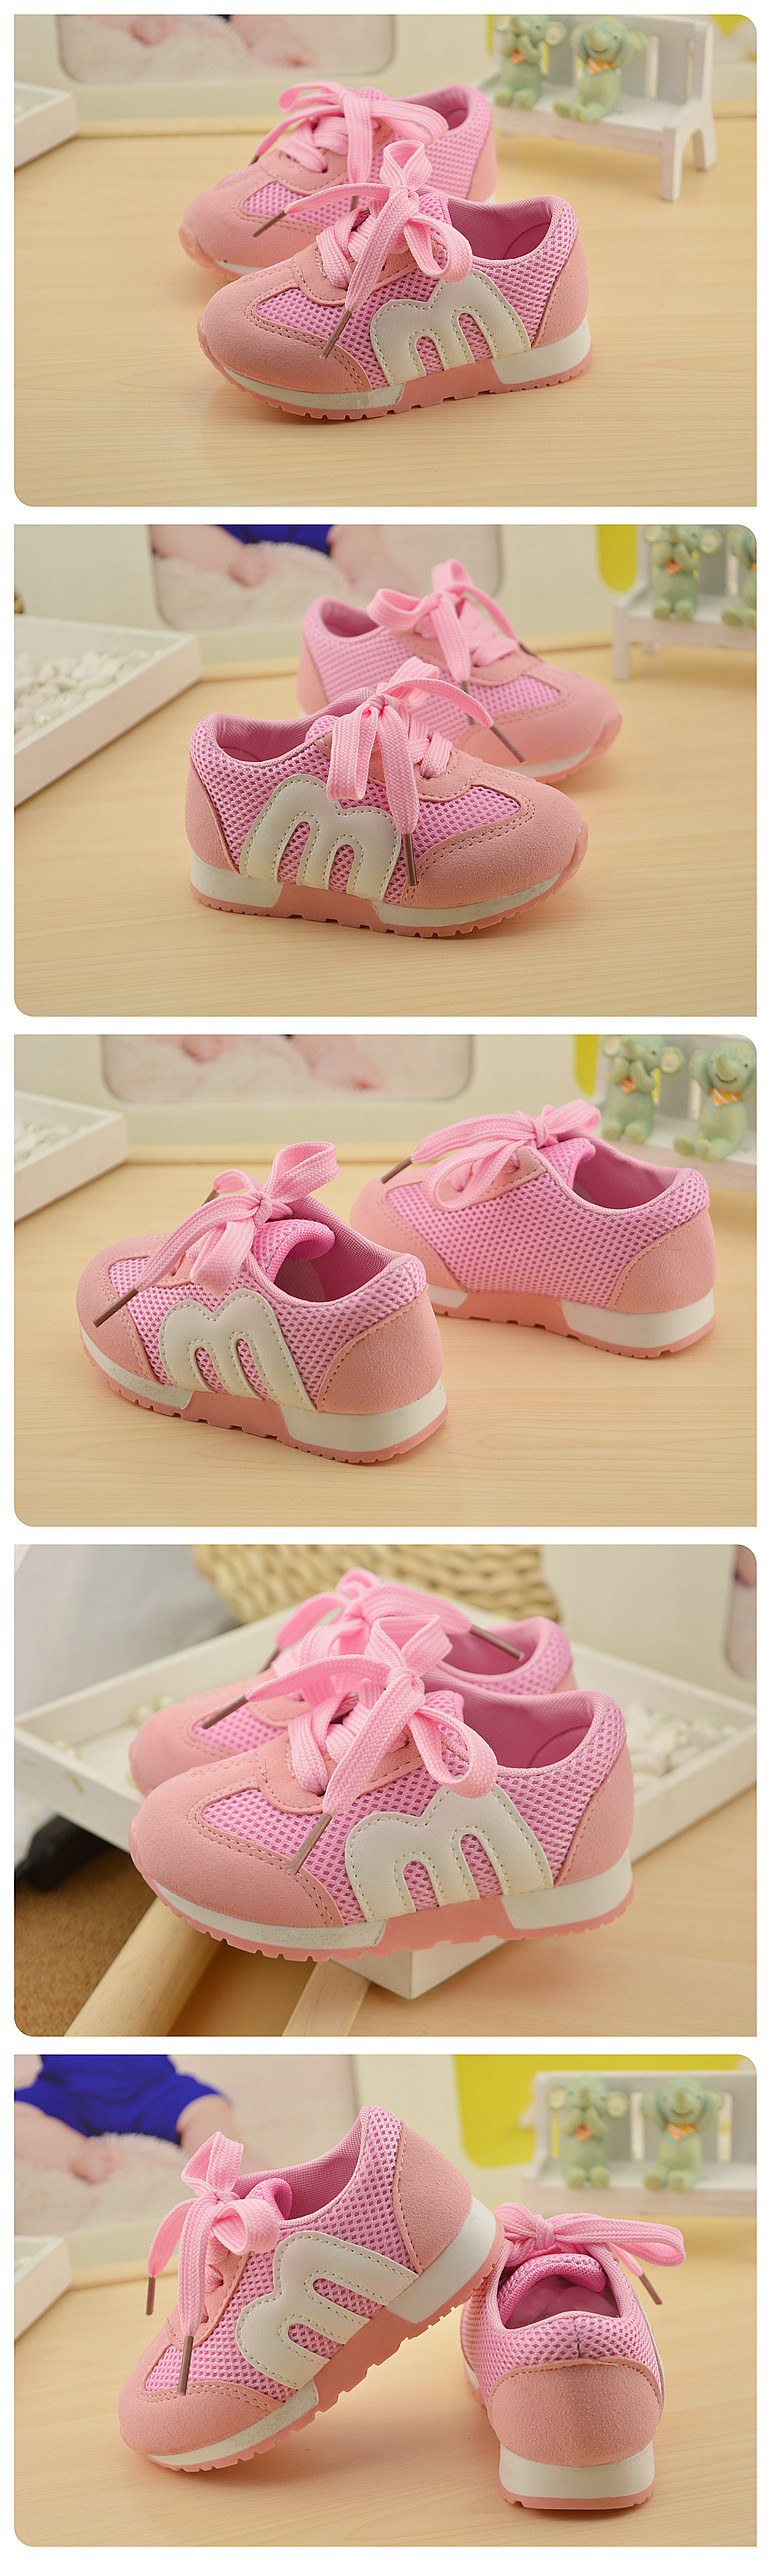 19 New Brand Spring Comfortable Sneakers Boy Girl Children's Sports Casual Shoes Breathable Mesh Baby Kids Soft Bottom Shoes 1